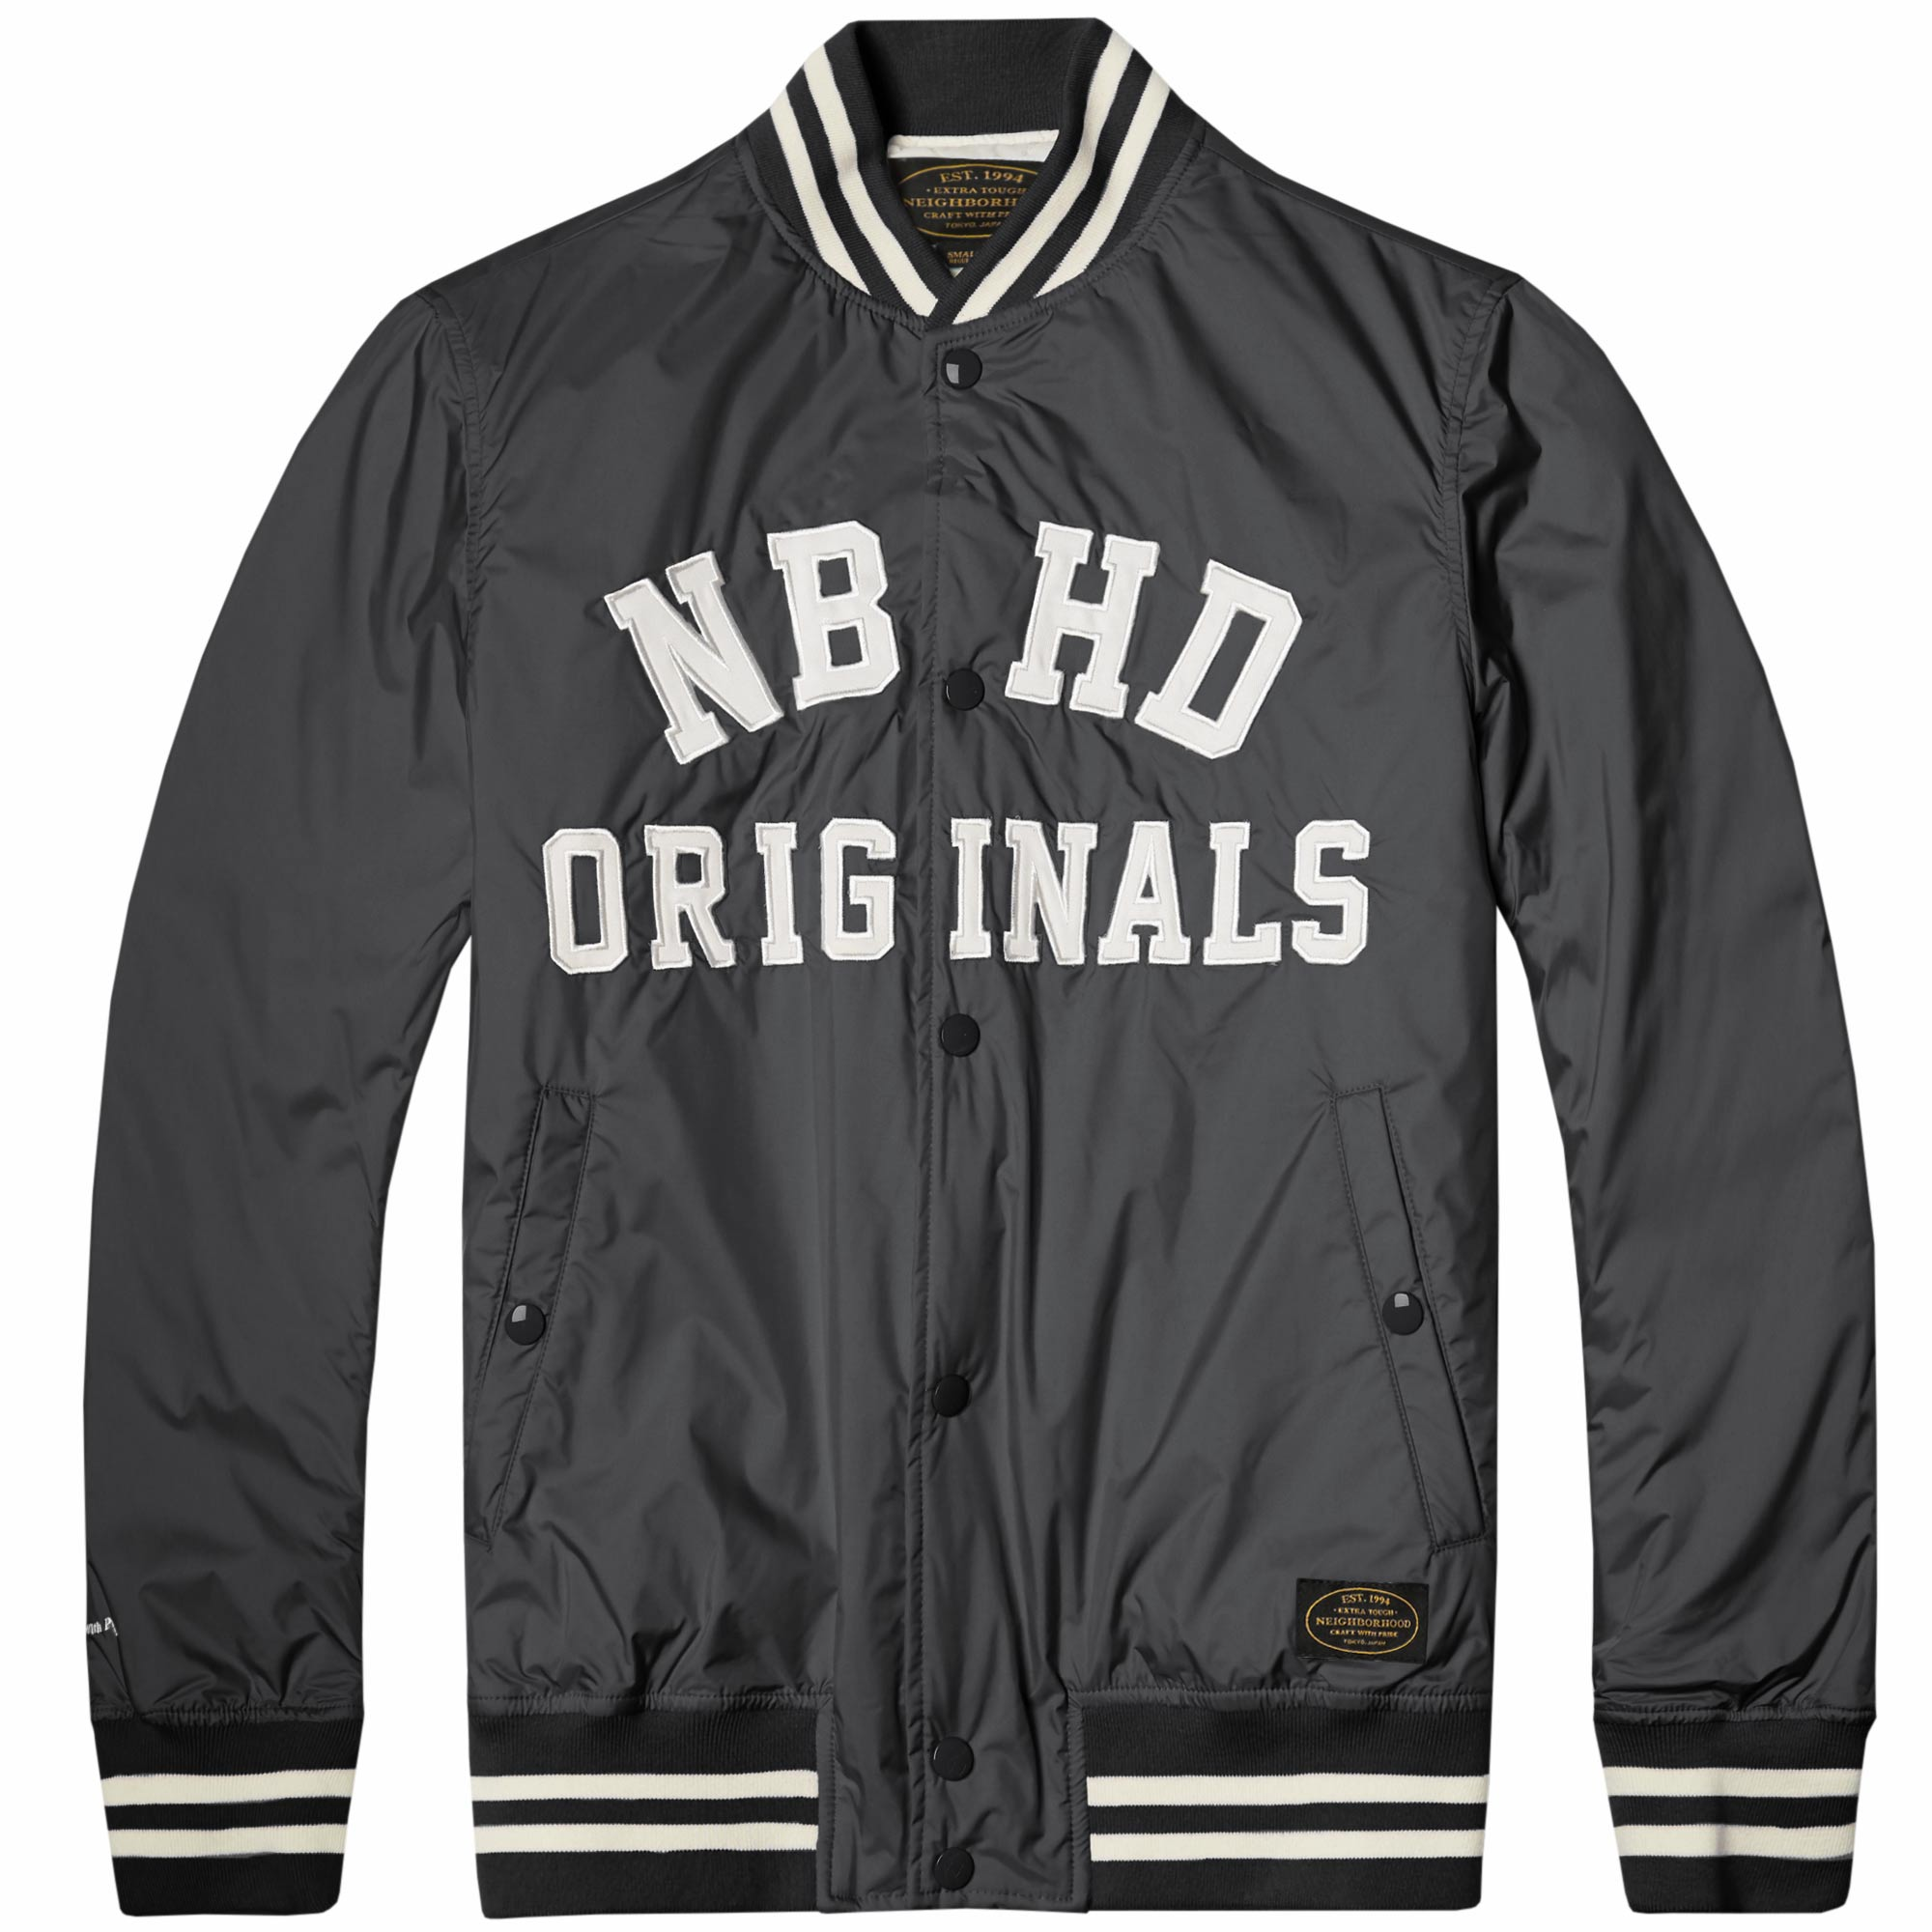 Adidas Original Baseball Jacket - Best Jacket 2017